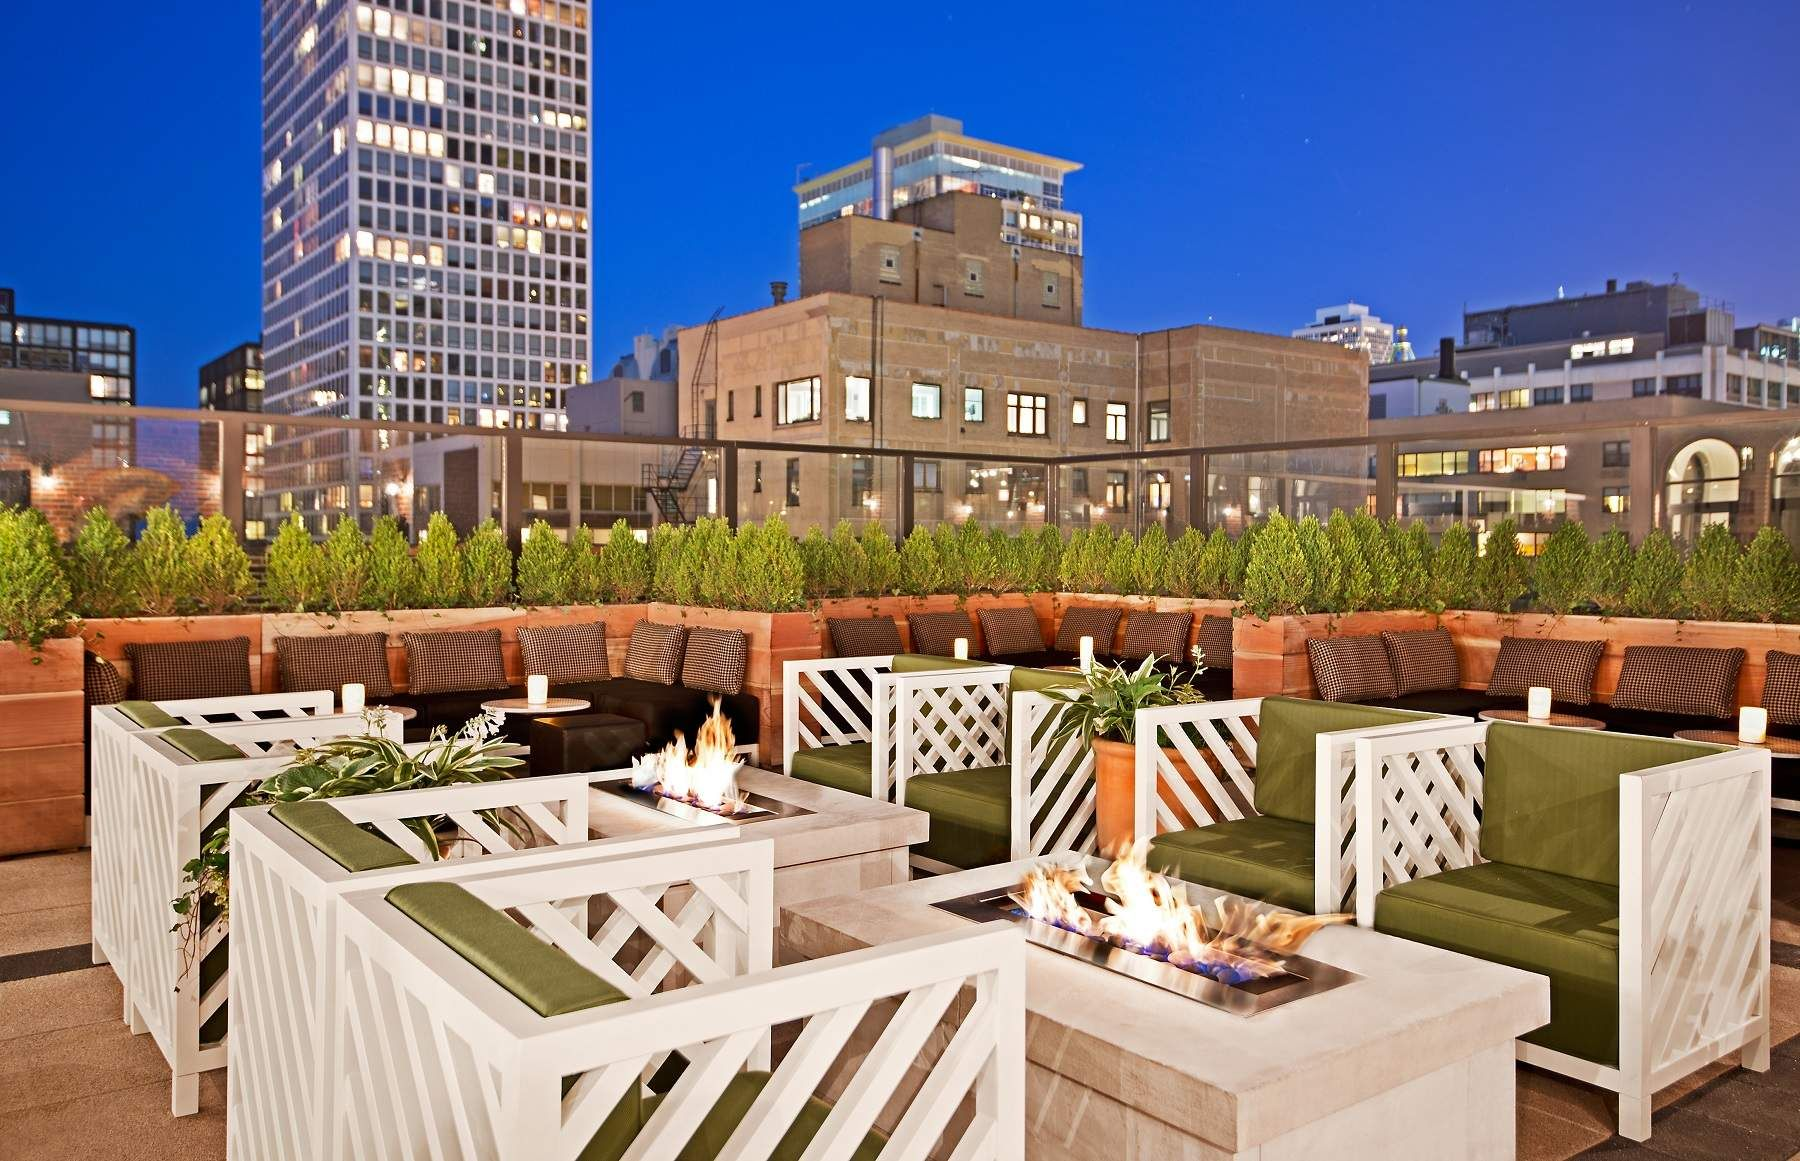 garden about exterior hotel dusk for park yourself see place